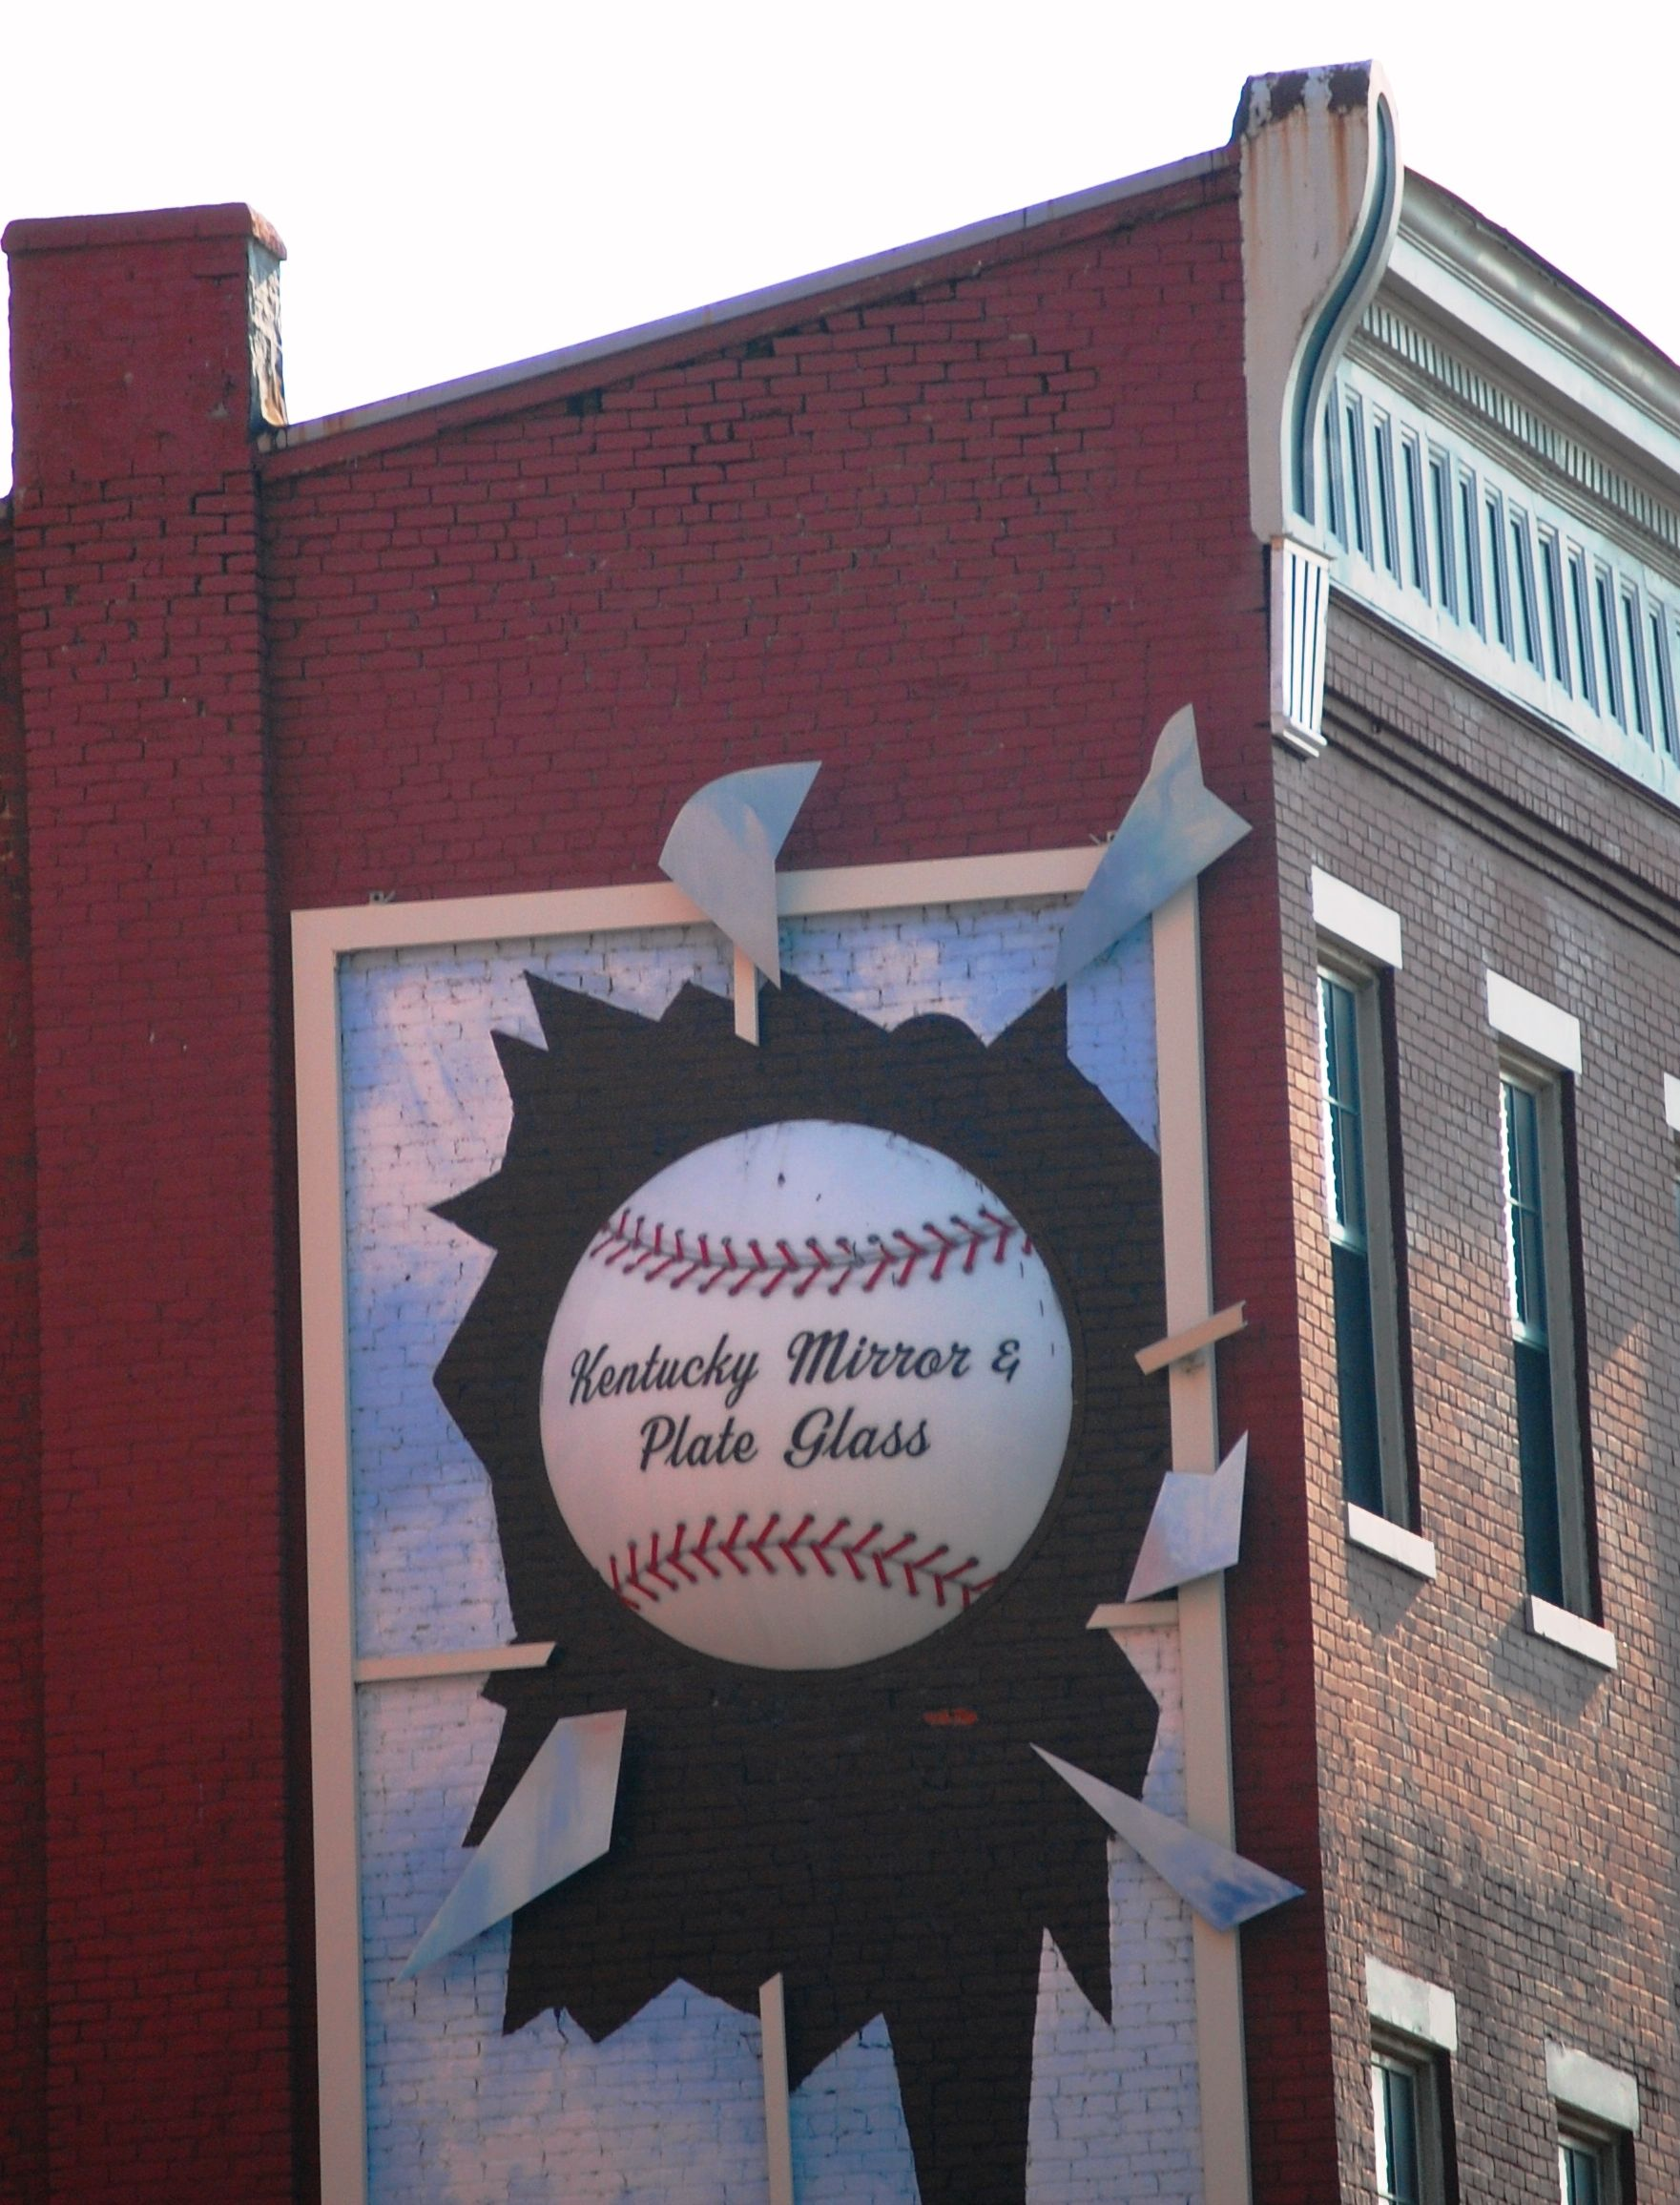 Giant baseball advertising a Mirror and Plate Glass